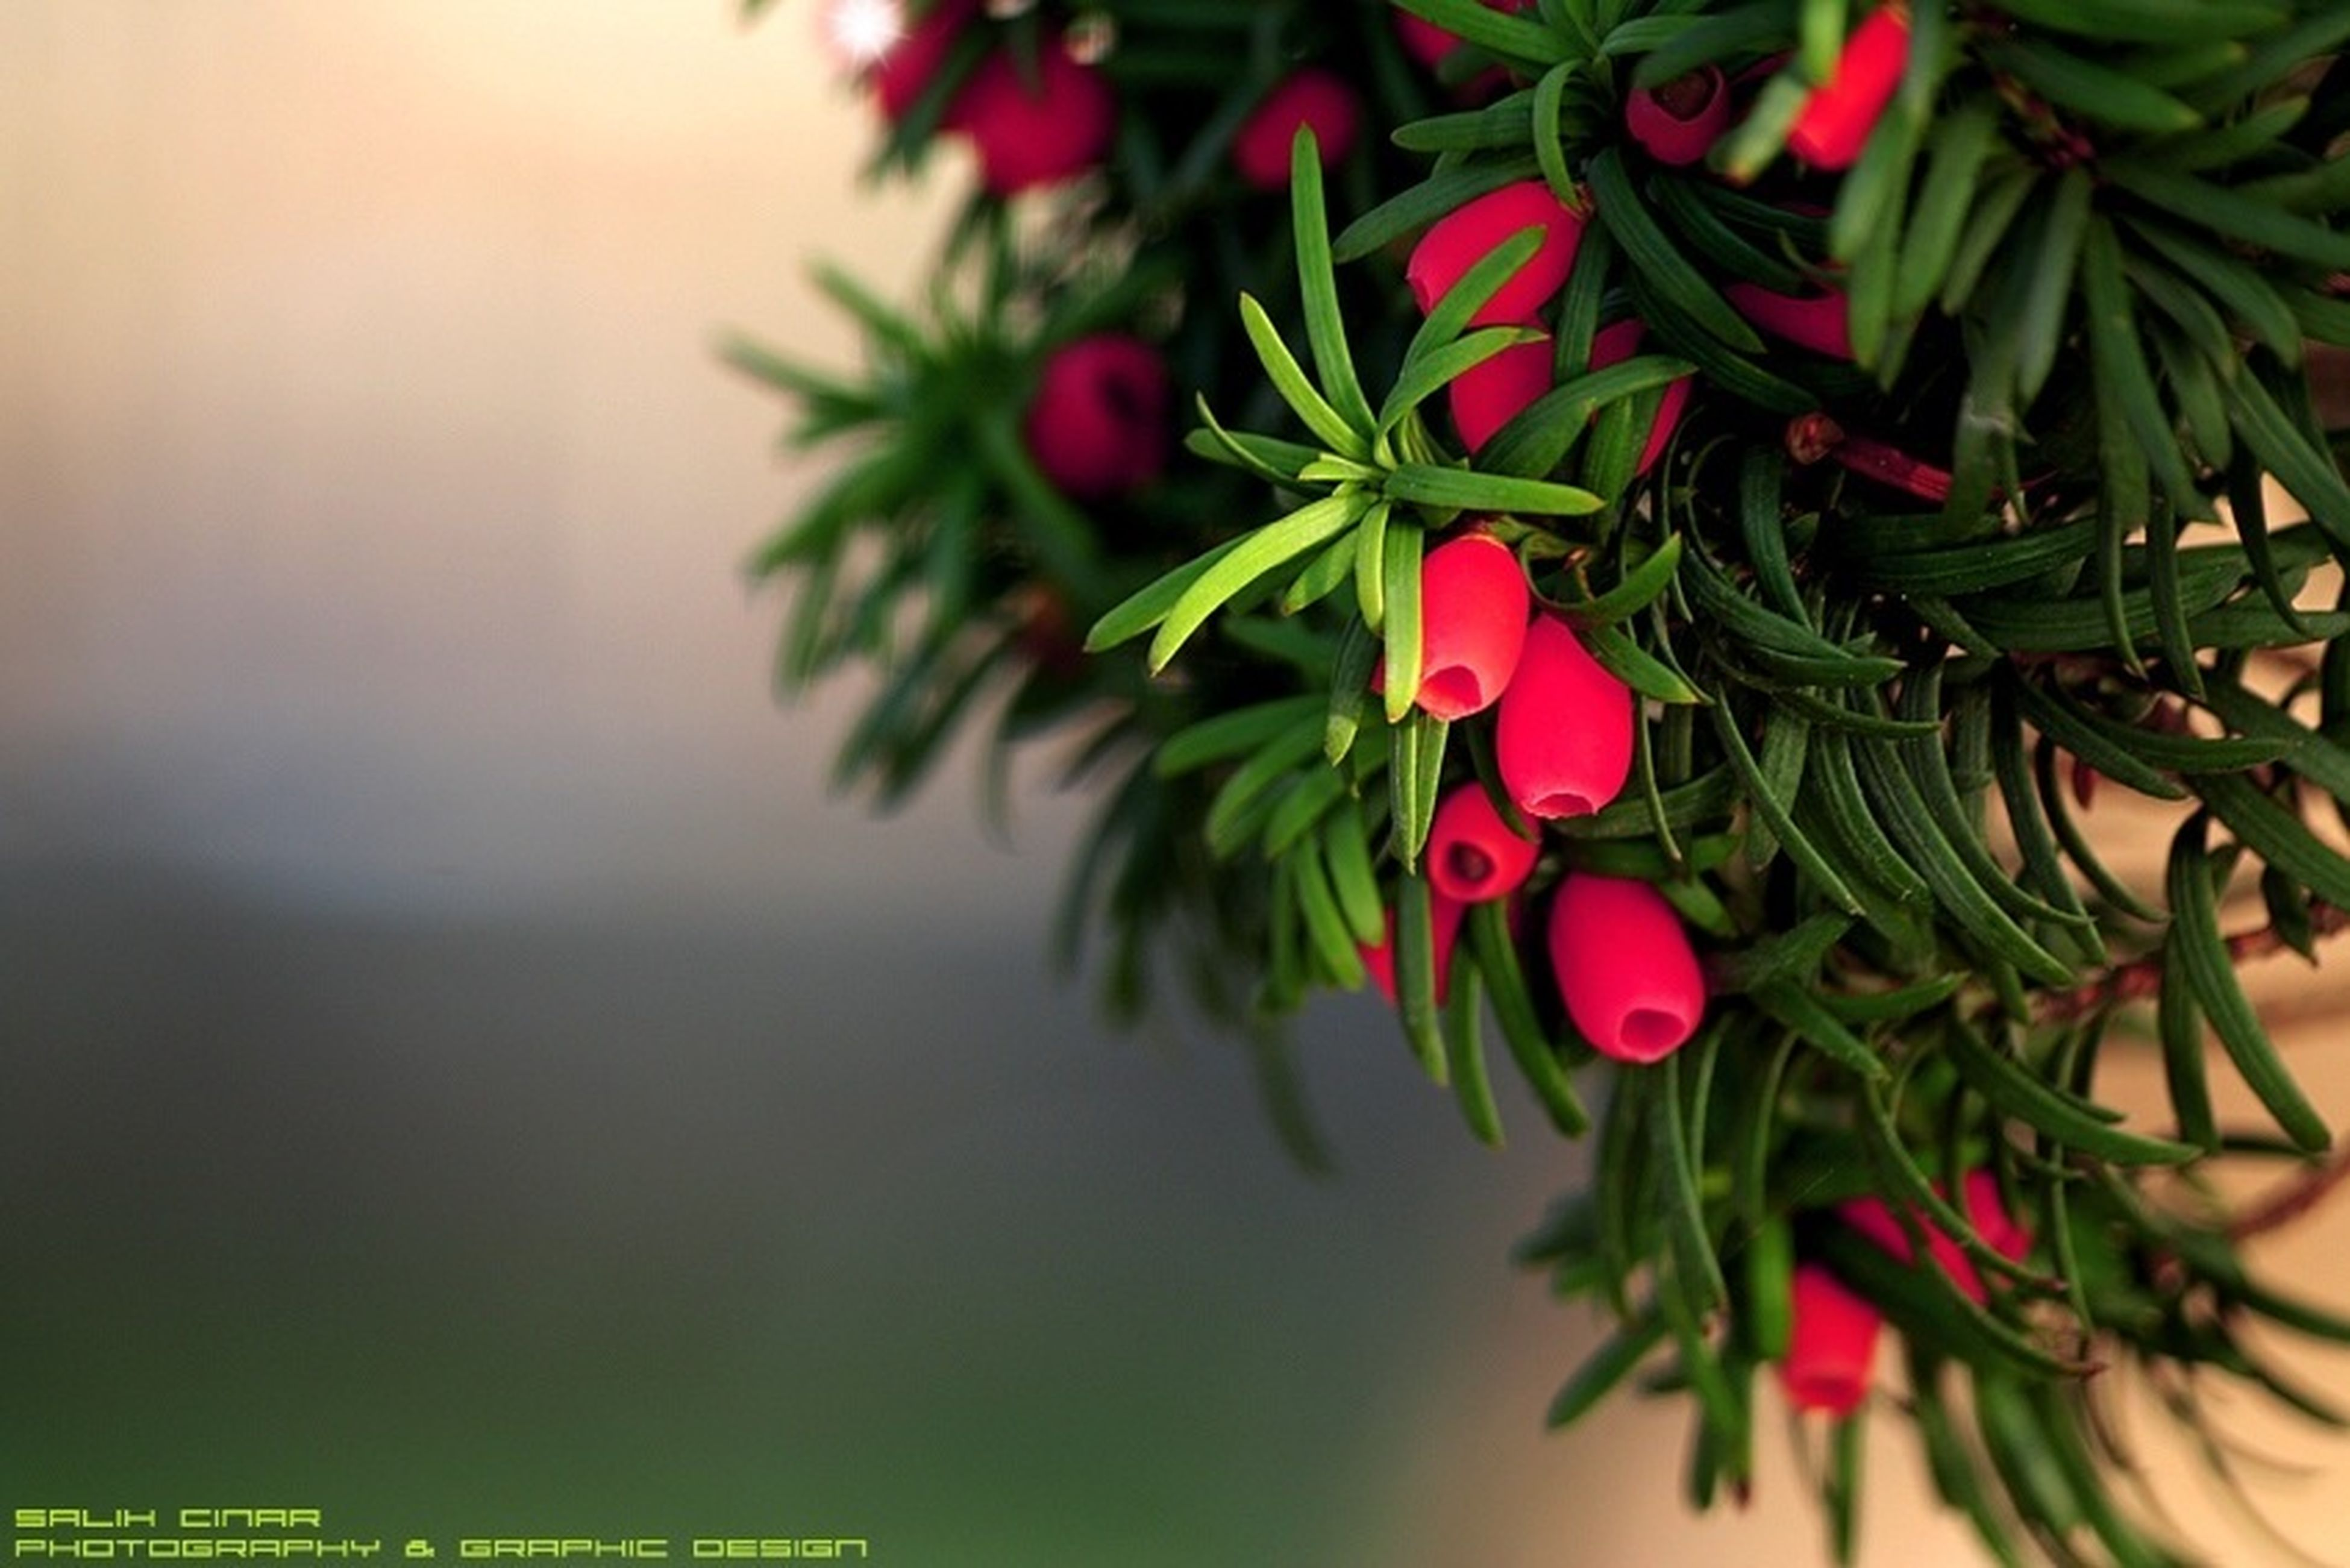 growth, freshness, red, leaf, close-up, flower, plant, focus on foreground, beauty in nature, nature, bud, stem, fragility, selective focus, branch, fruit, twig, green color, botany, no people